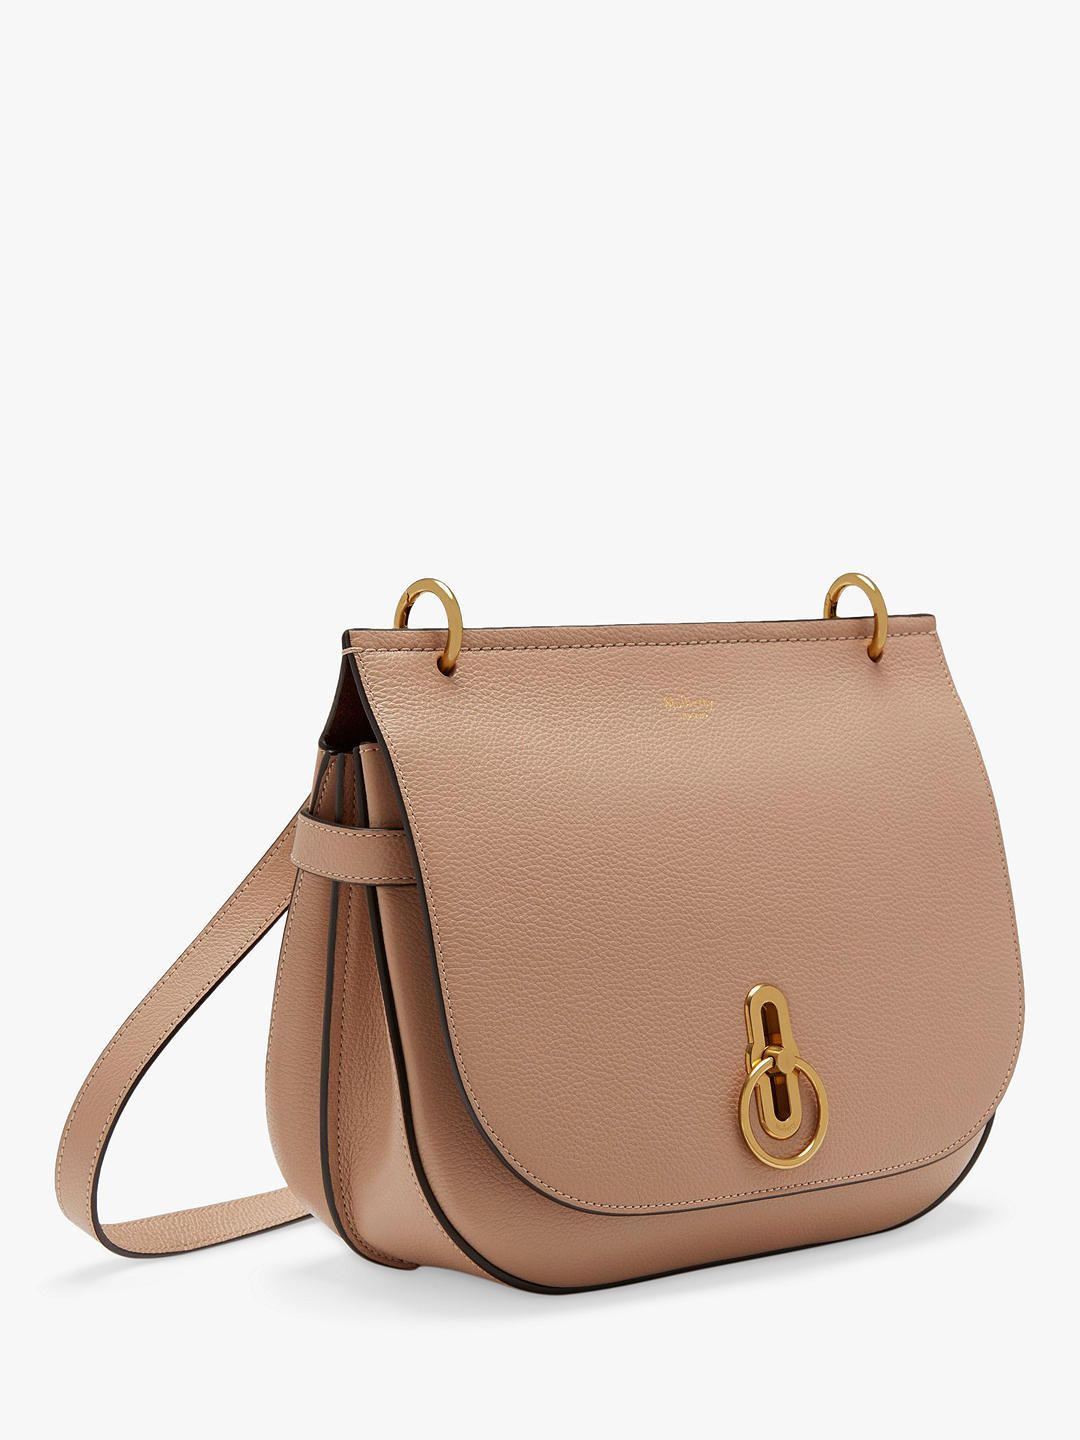 f4a62e8be3ee Icon of a female style. Women's handbag. Classical style. #Durability.  Elegance. perfect size and looks great. Not too heavy and colour will  transition ...